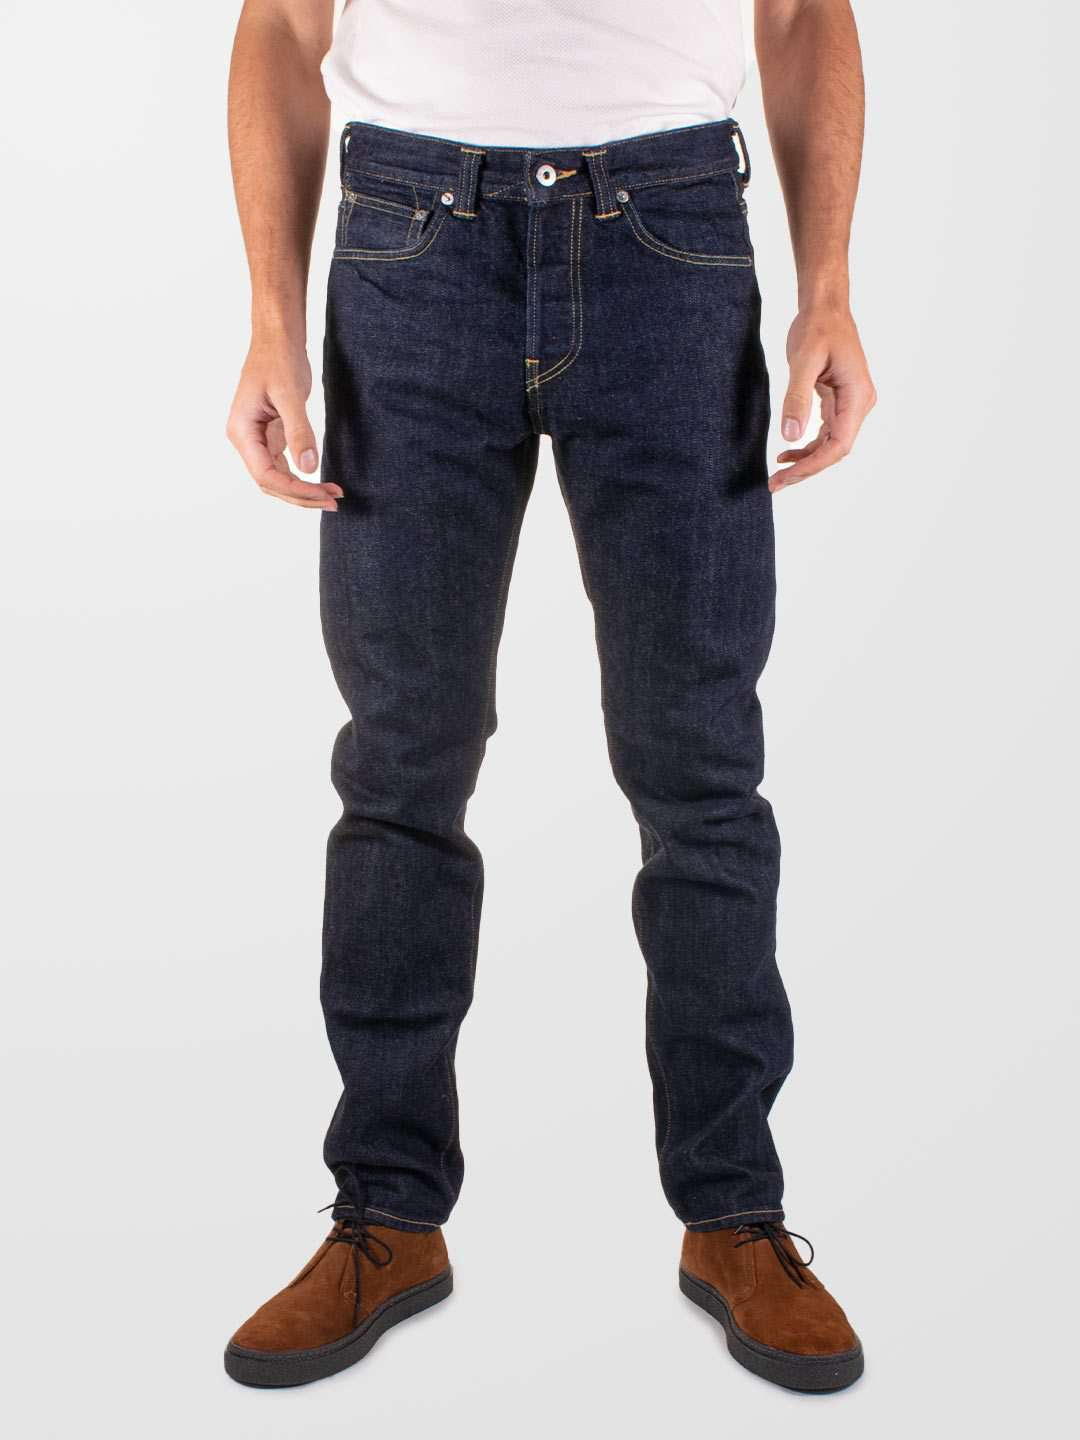 EDWIN ED-80 Red Listed Salvage Denim Jeans